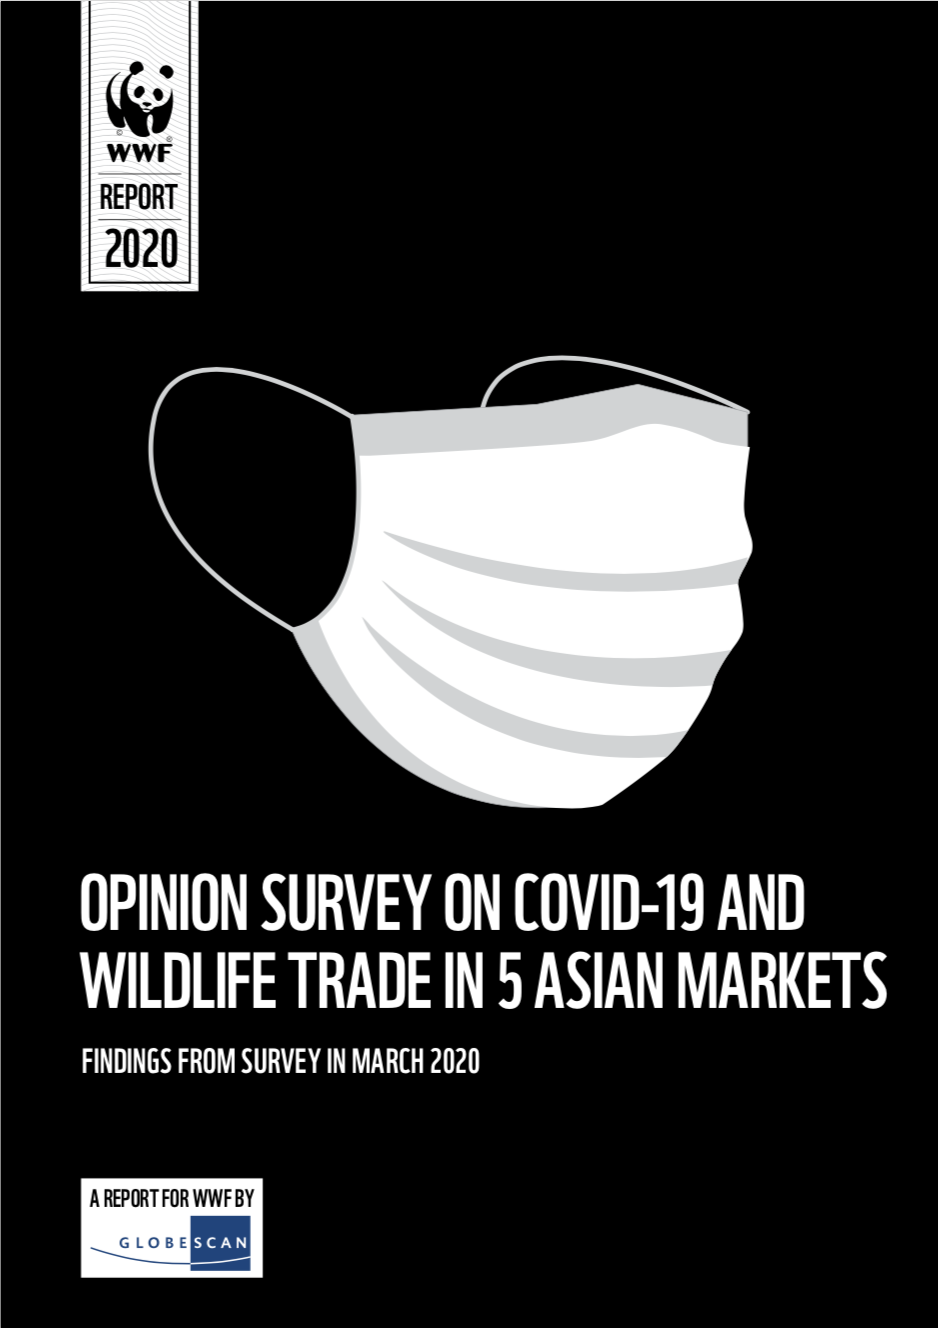 'Opinion survey on COVID-19 and wildlife trade in 5 Asian markets' report cover